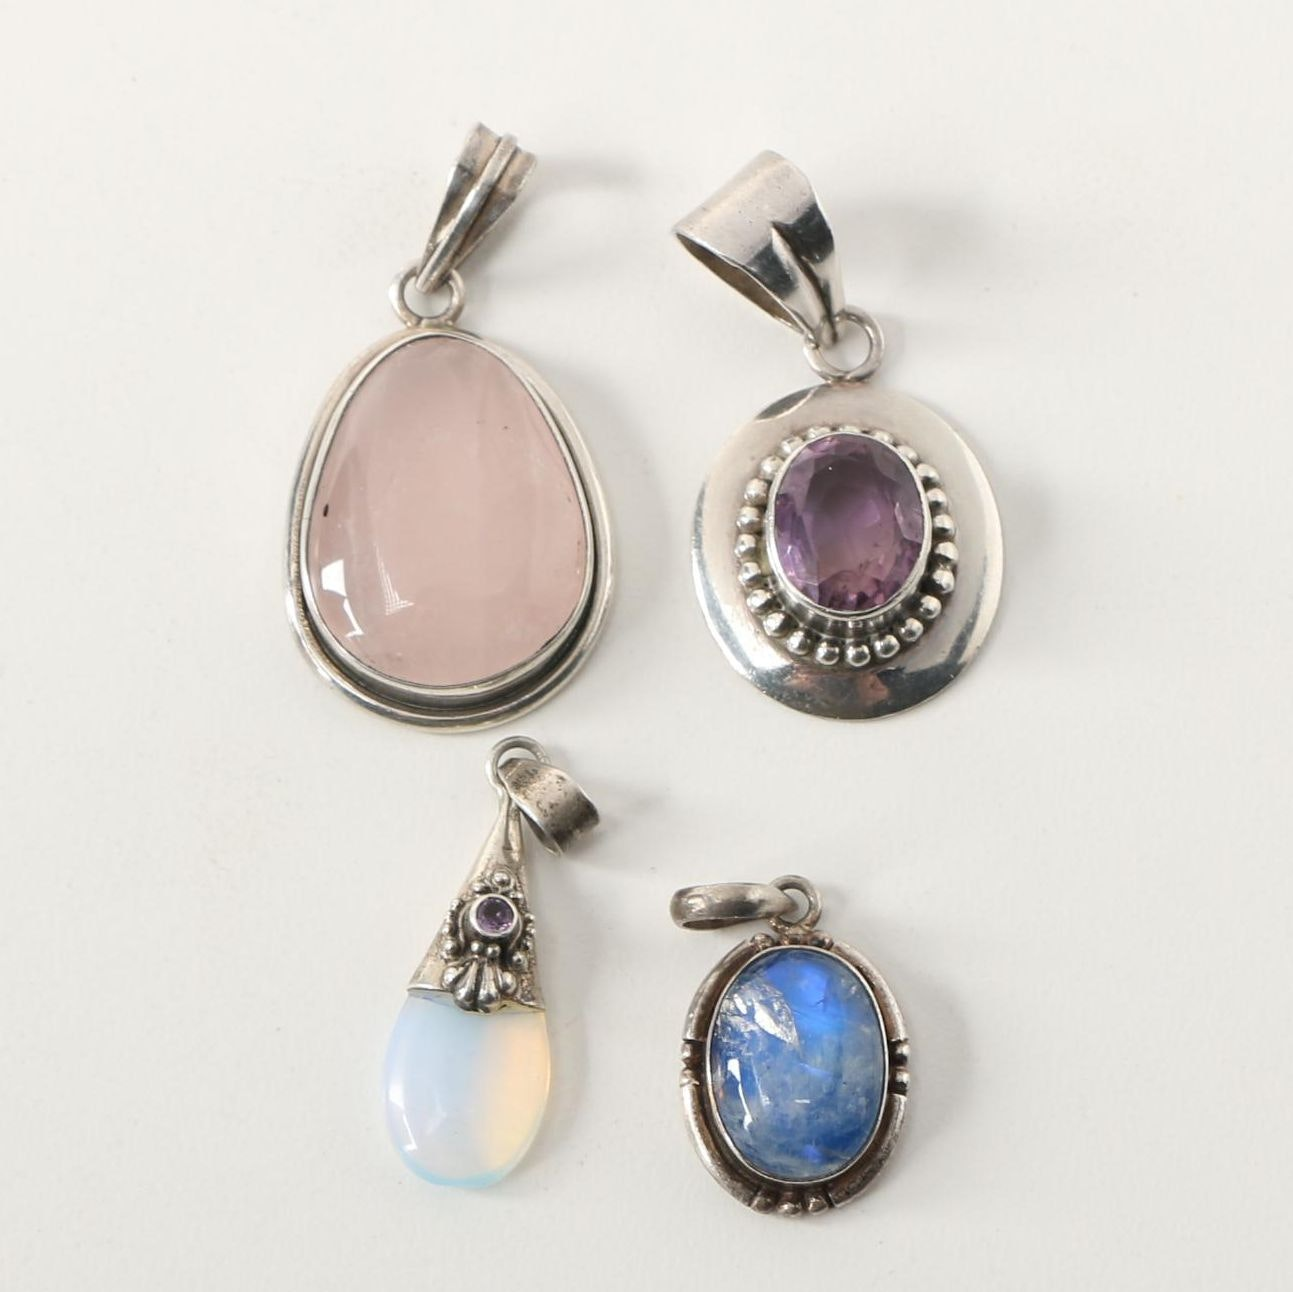 Assorted Sterling Silver and Gemstone Pendants